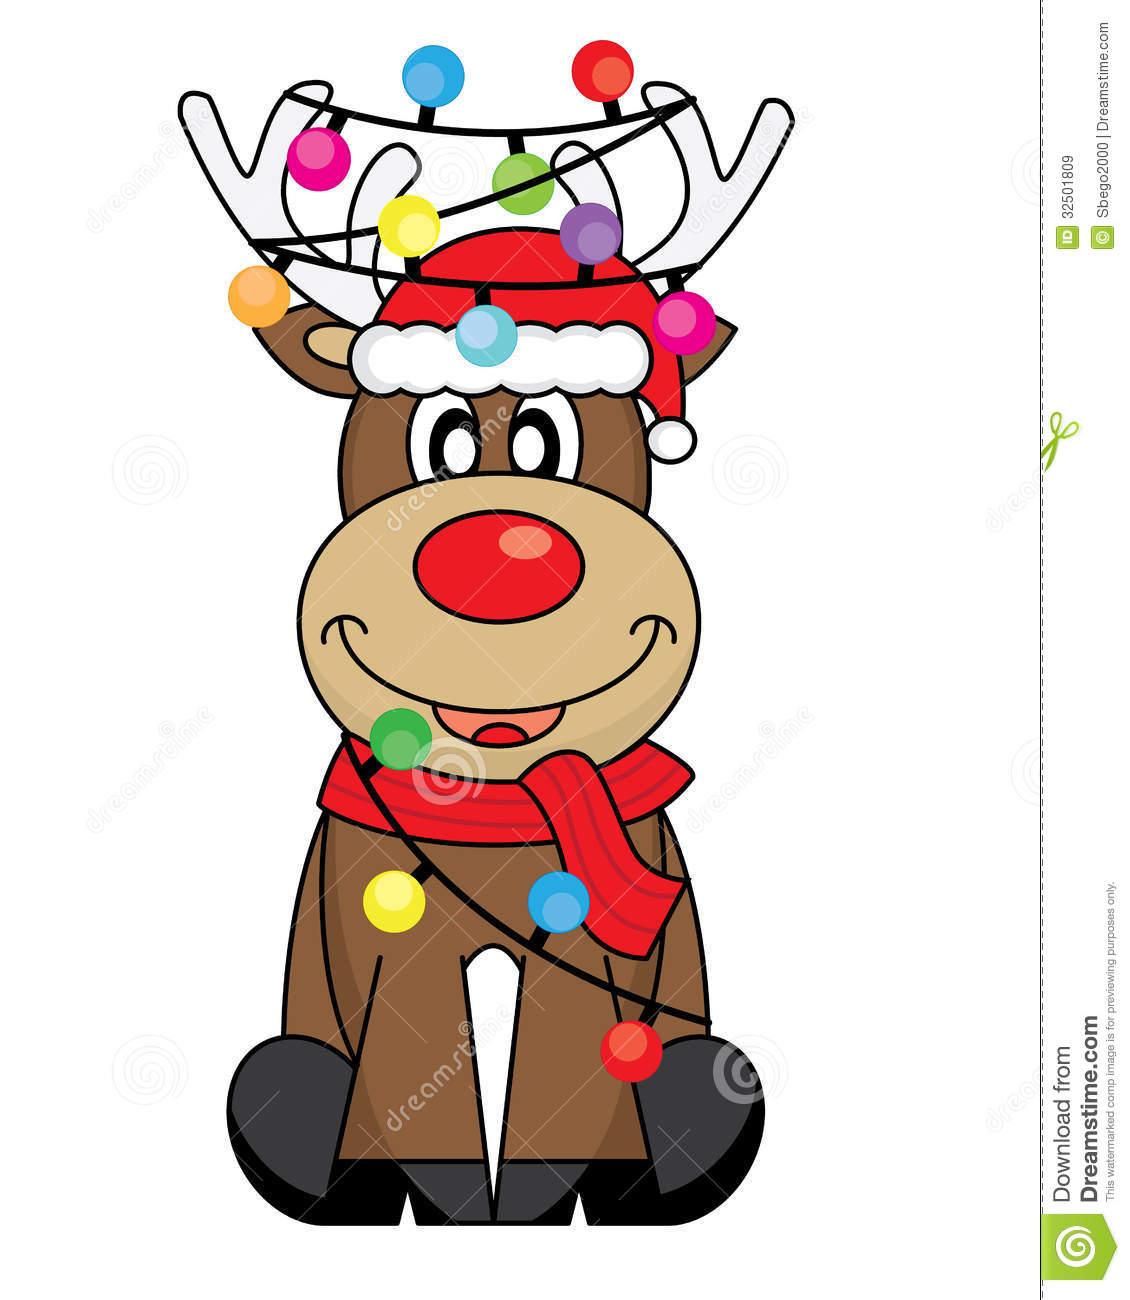 Flashing reindeer clipart vector freeuse download Flashing reindeer clipart - ClipartFest vector freeuse download